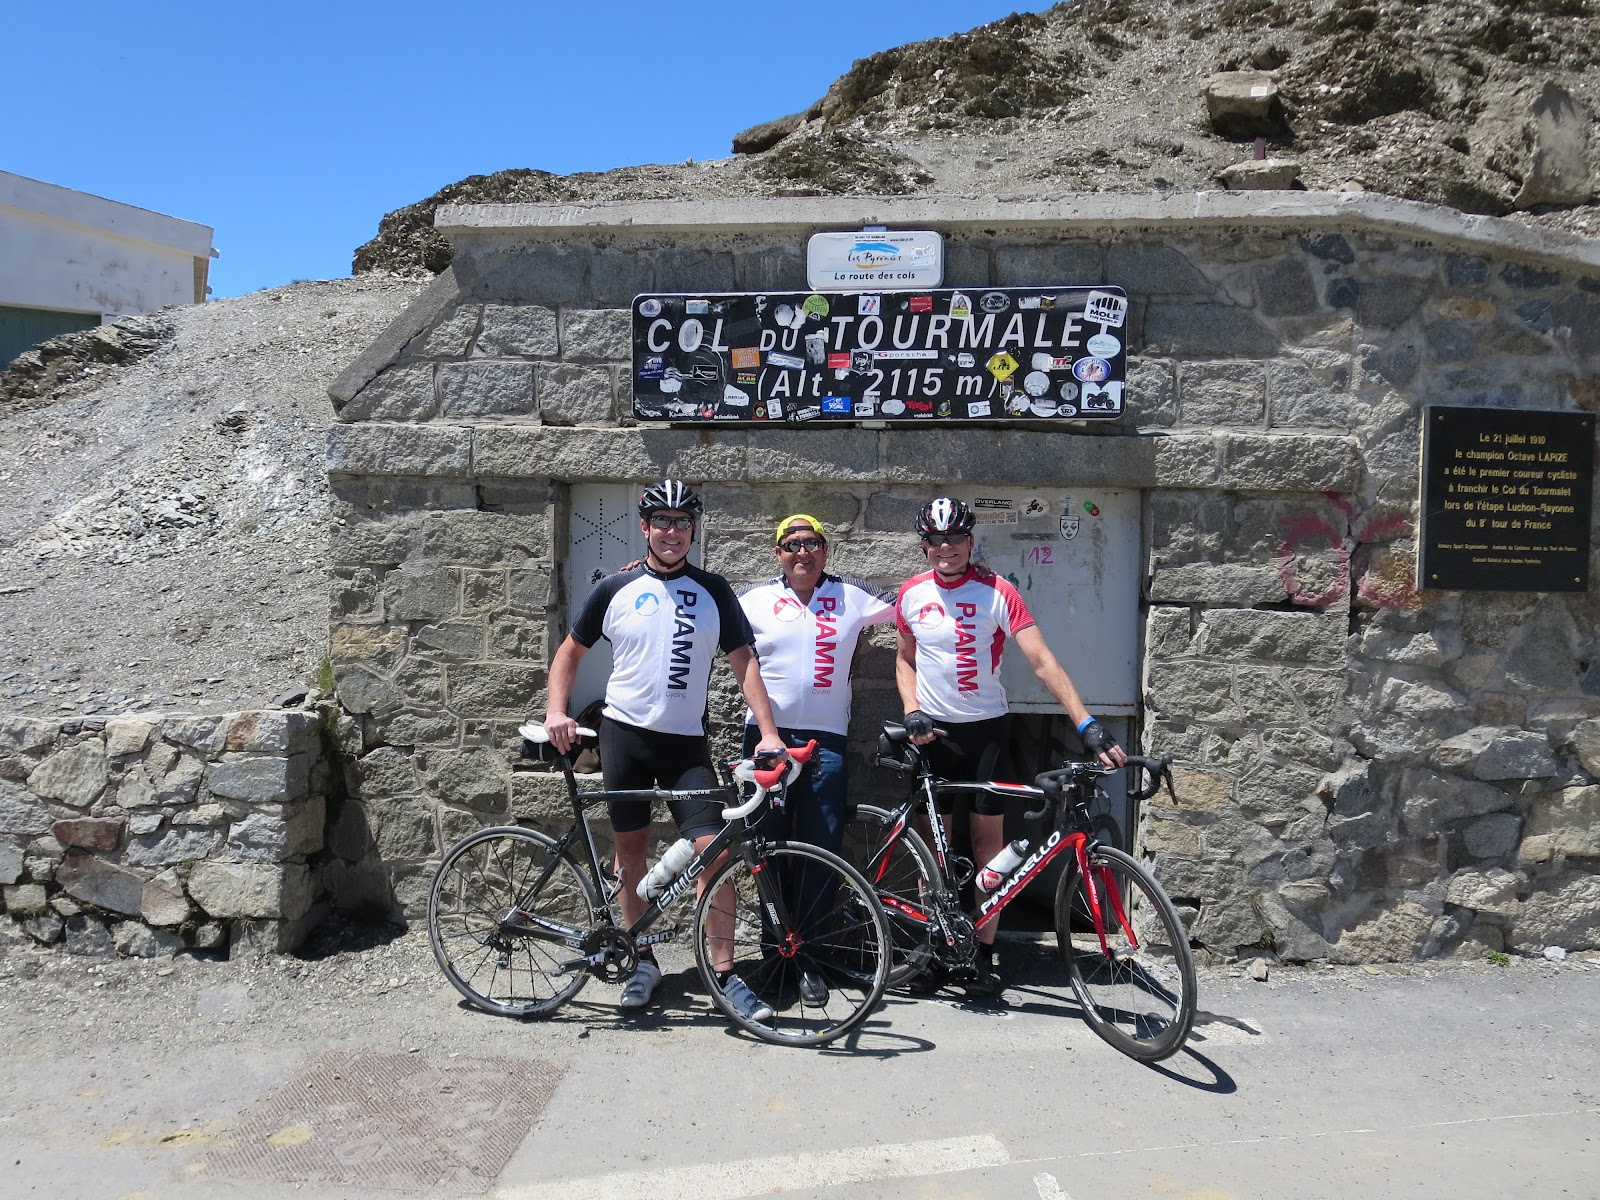 Col du Tourmalet cycling trip summer 2013 - cyclists at col with col sign and Le Geant